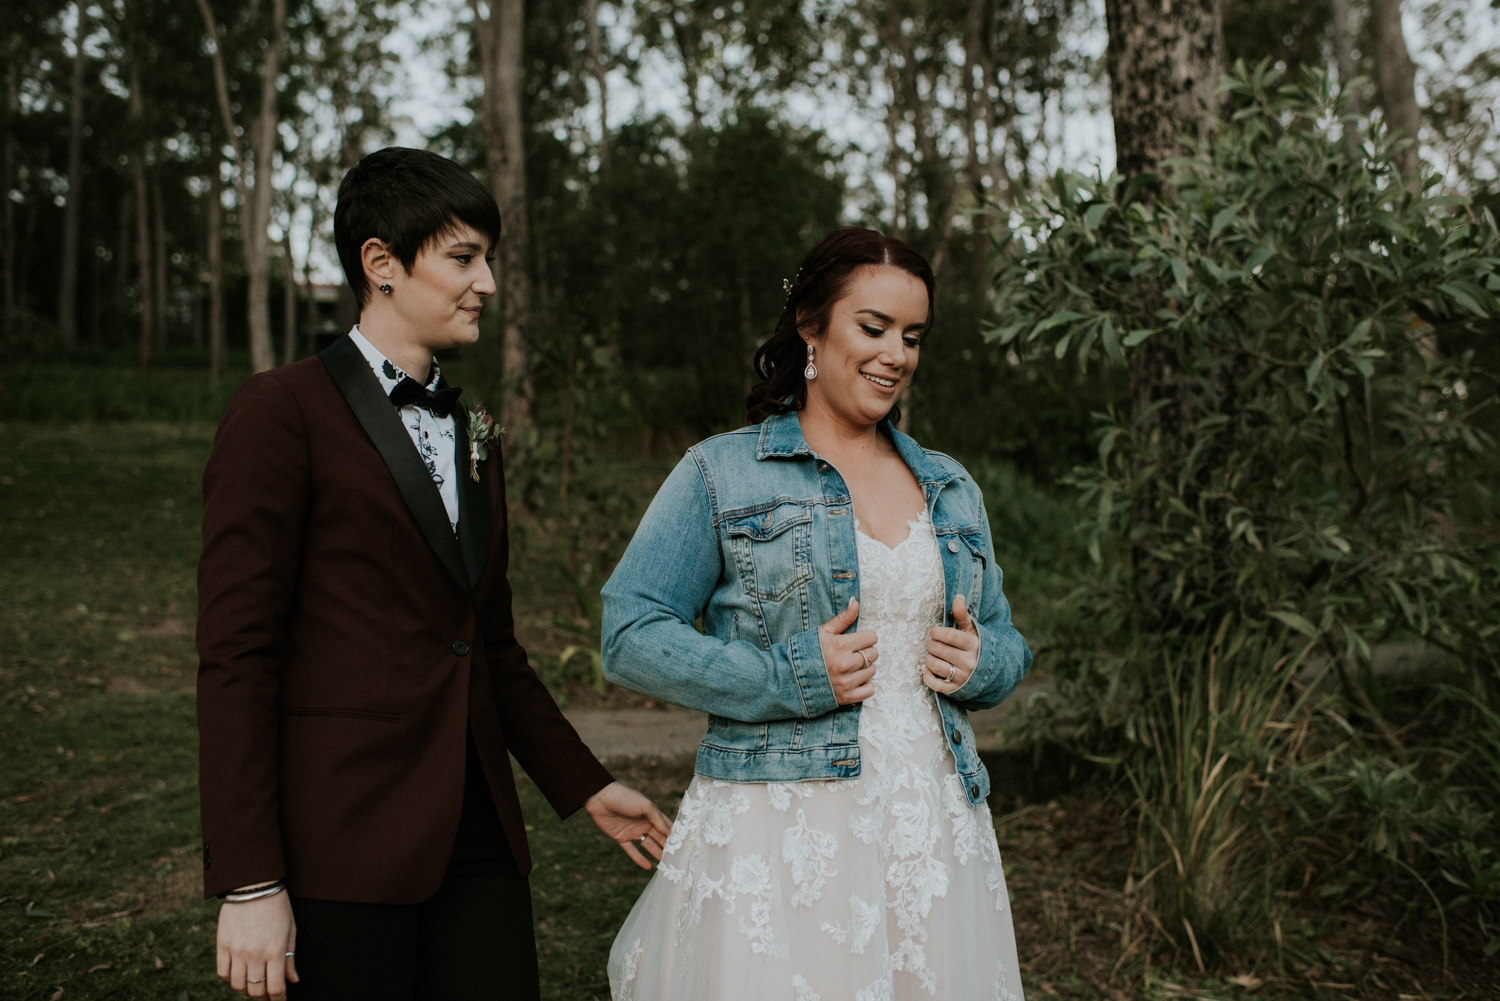 Brisbane Wedding Photographer | Walkabout Creek Photography-92.jpg